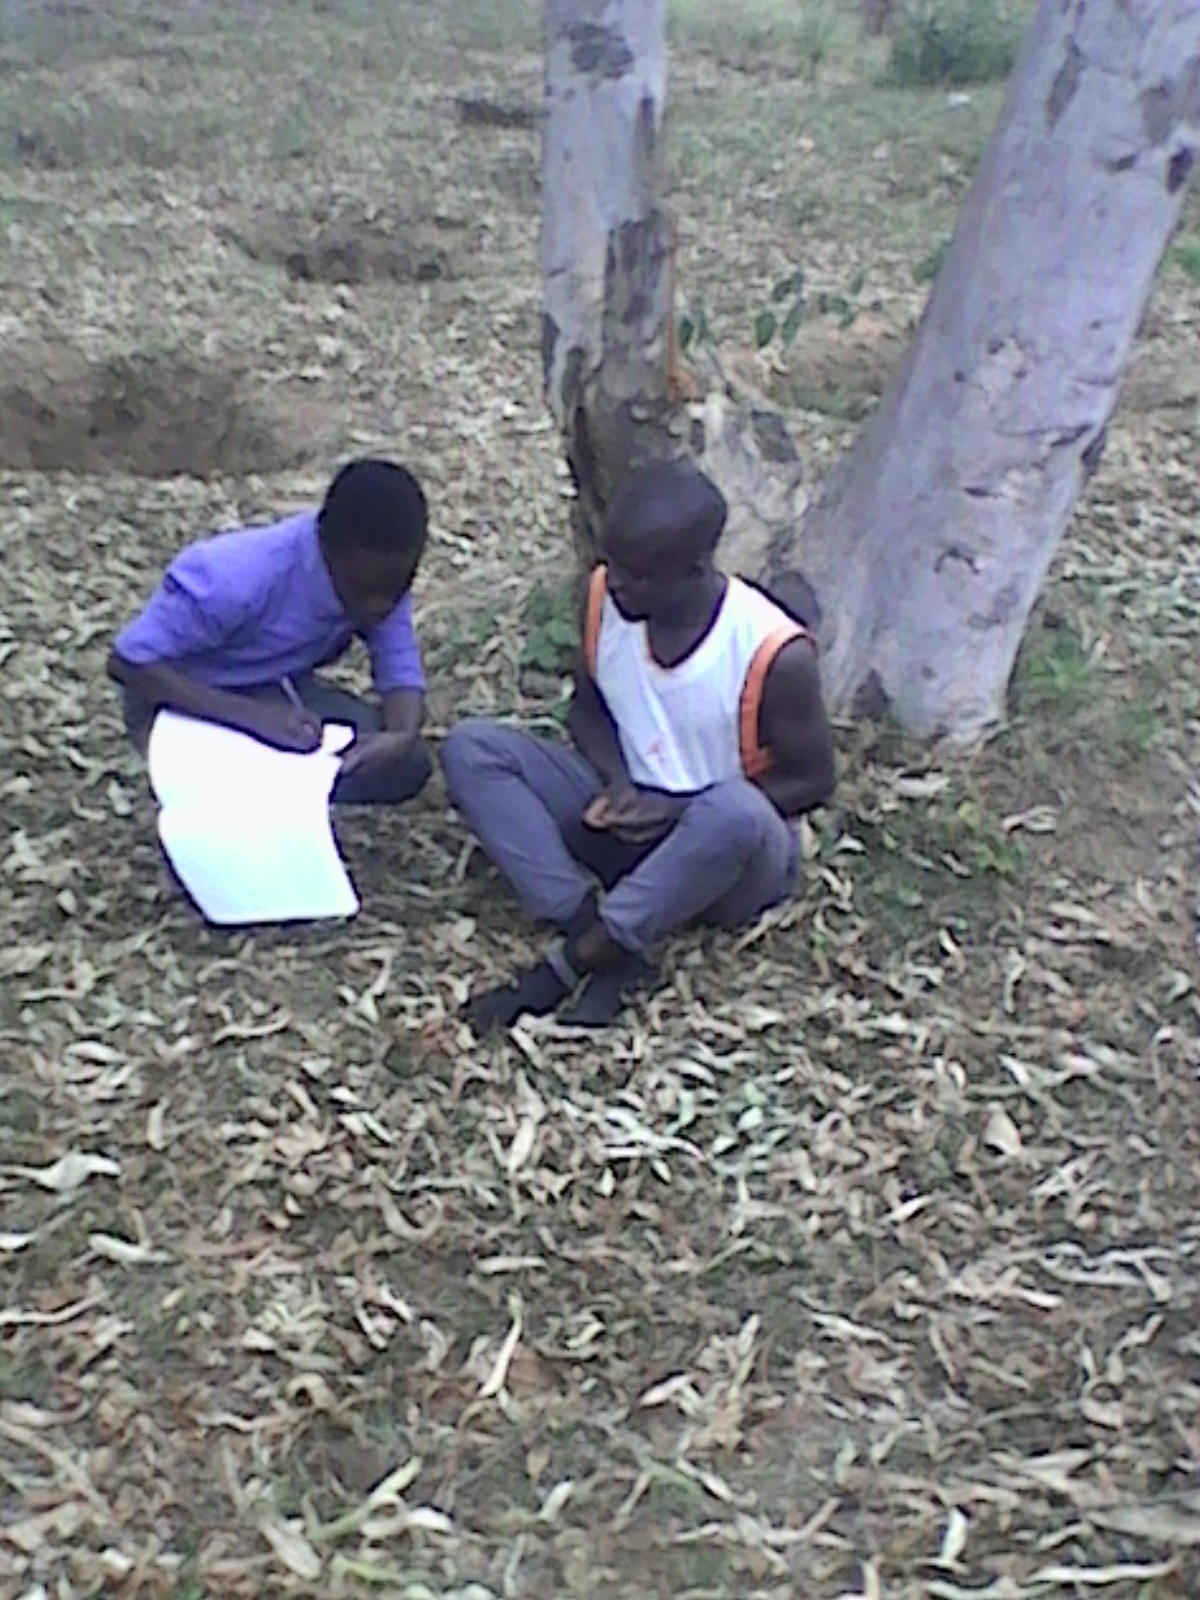 Katoto student interviews a boy who dropped out of school